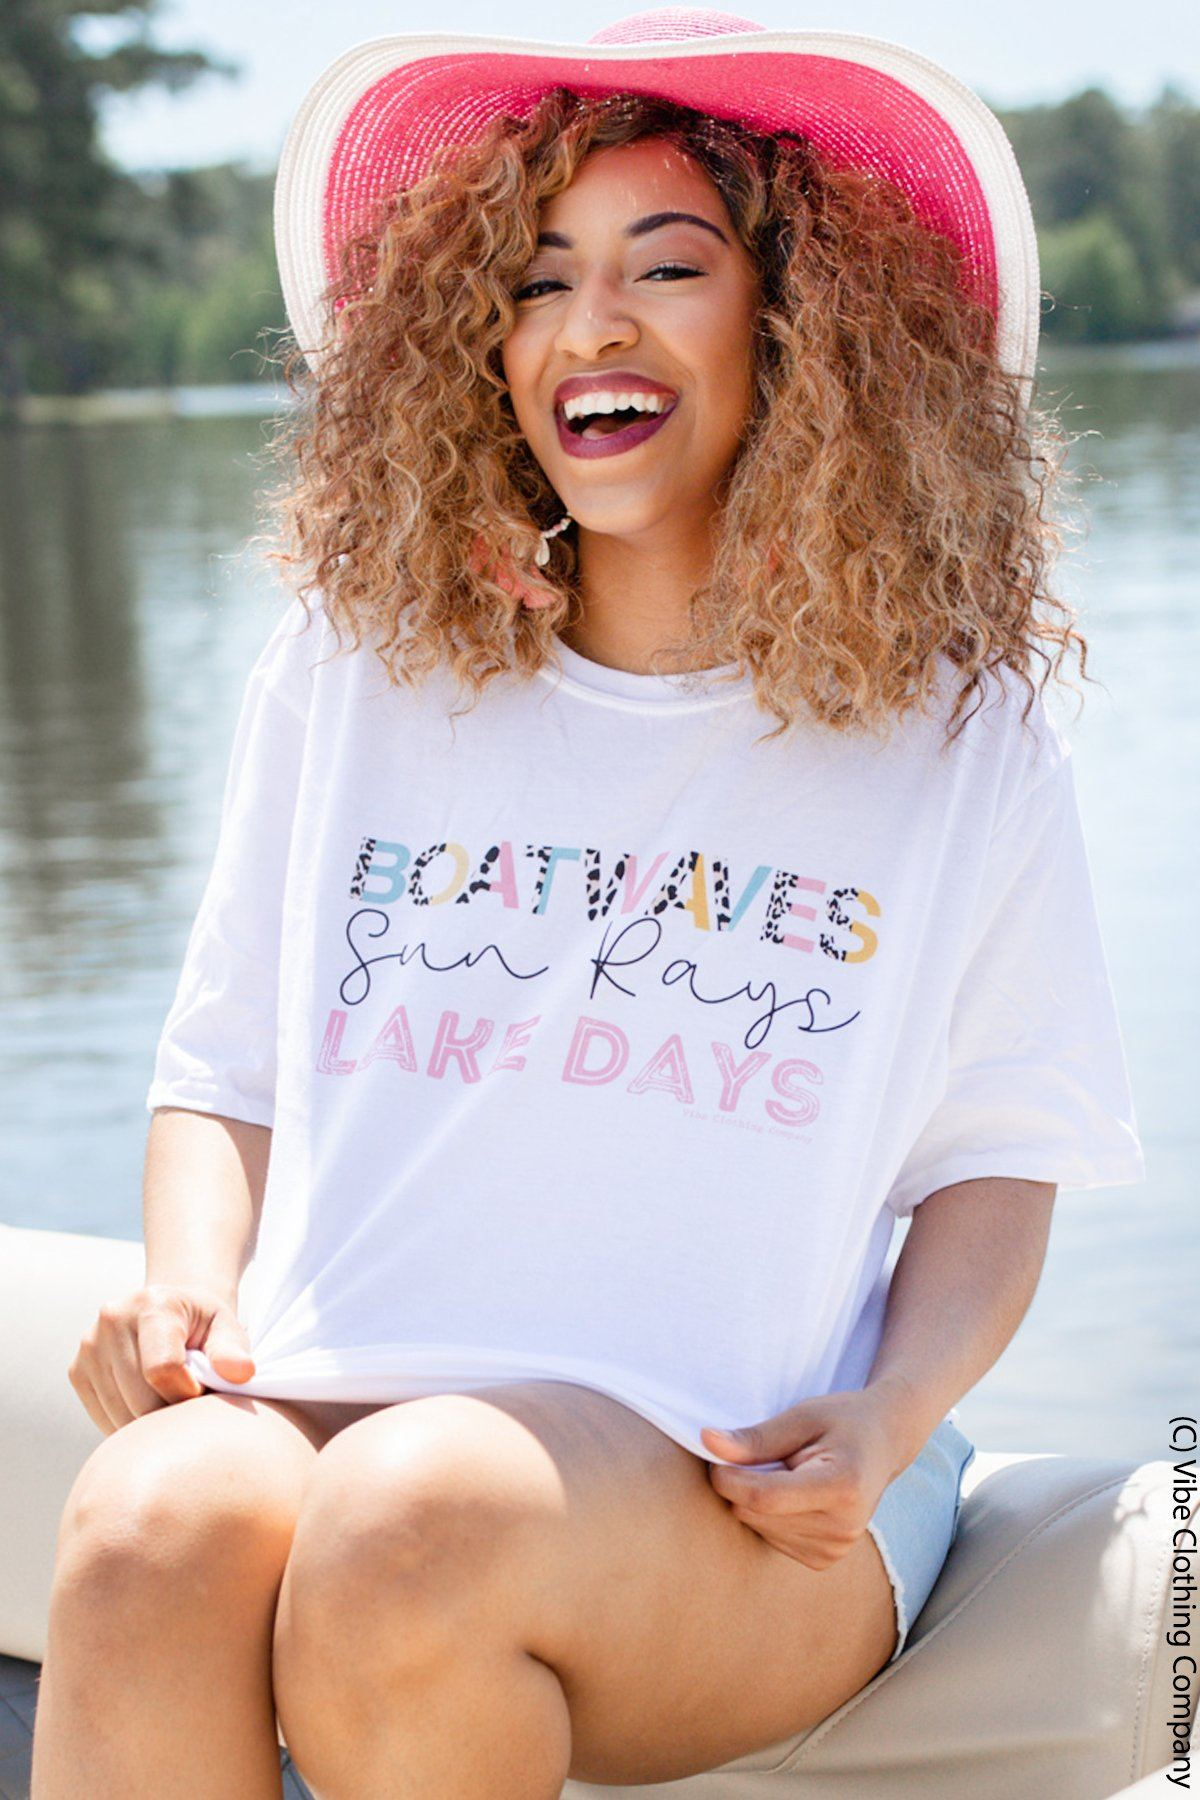 Boatwaves Graphic Tee graphic tees Mark tee